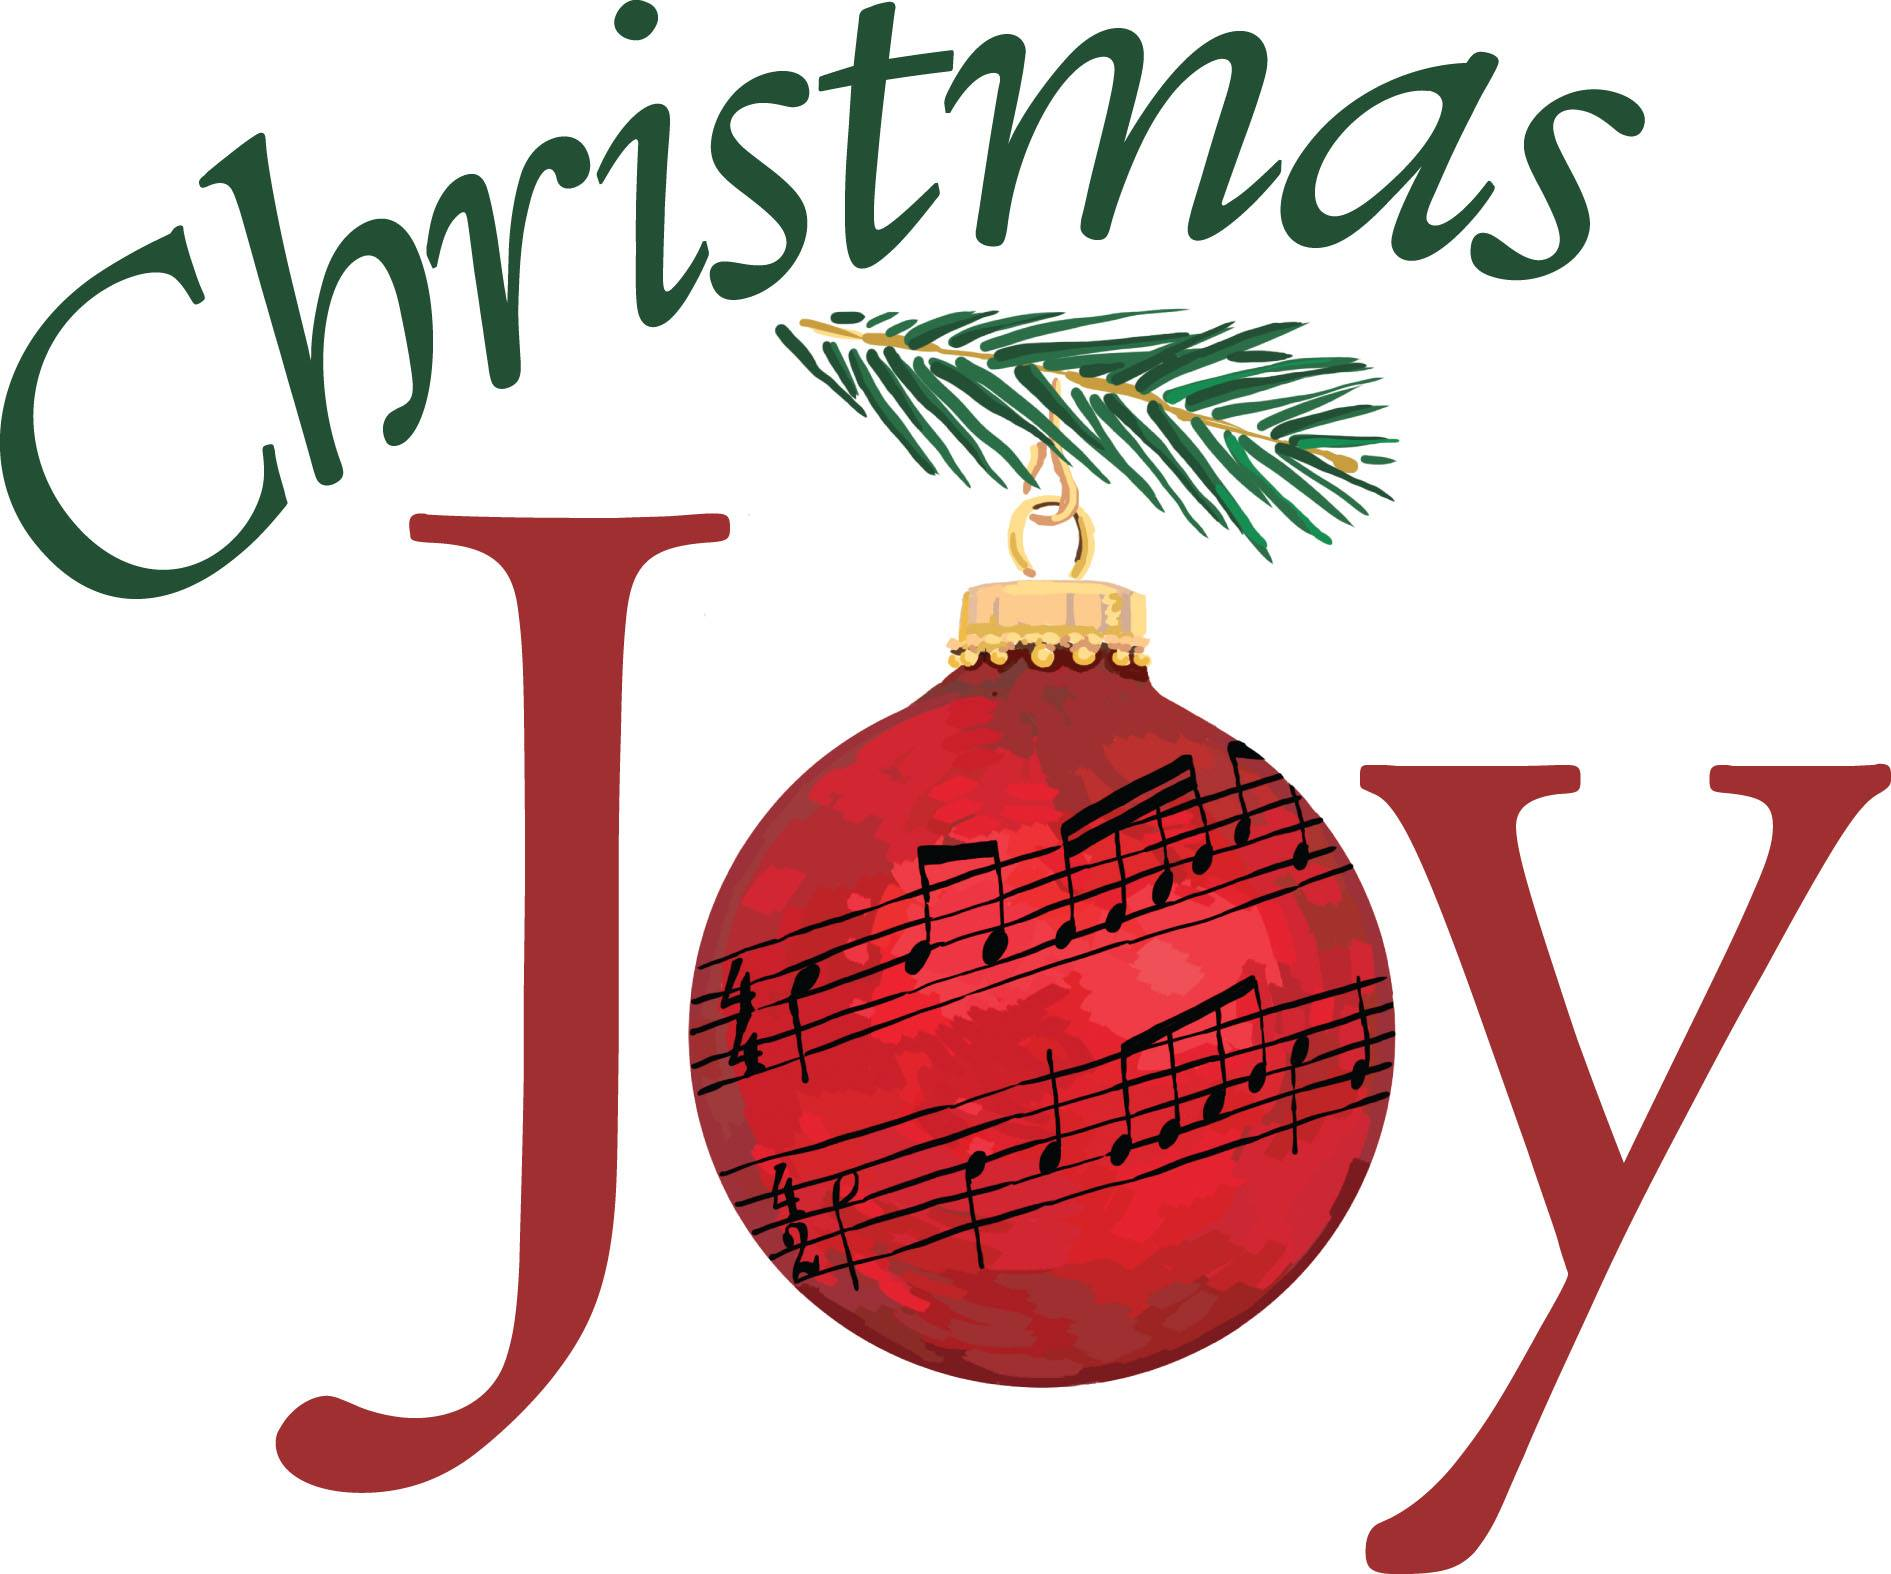 Monchy Development Committee's 7th Annual Christmas Carol Festival things to do in st lucia like a local traditional christmas in monchy Gros Islet. Near Royalton, sandals, Koko Creole